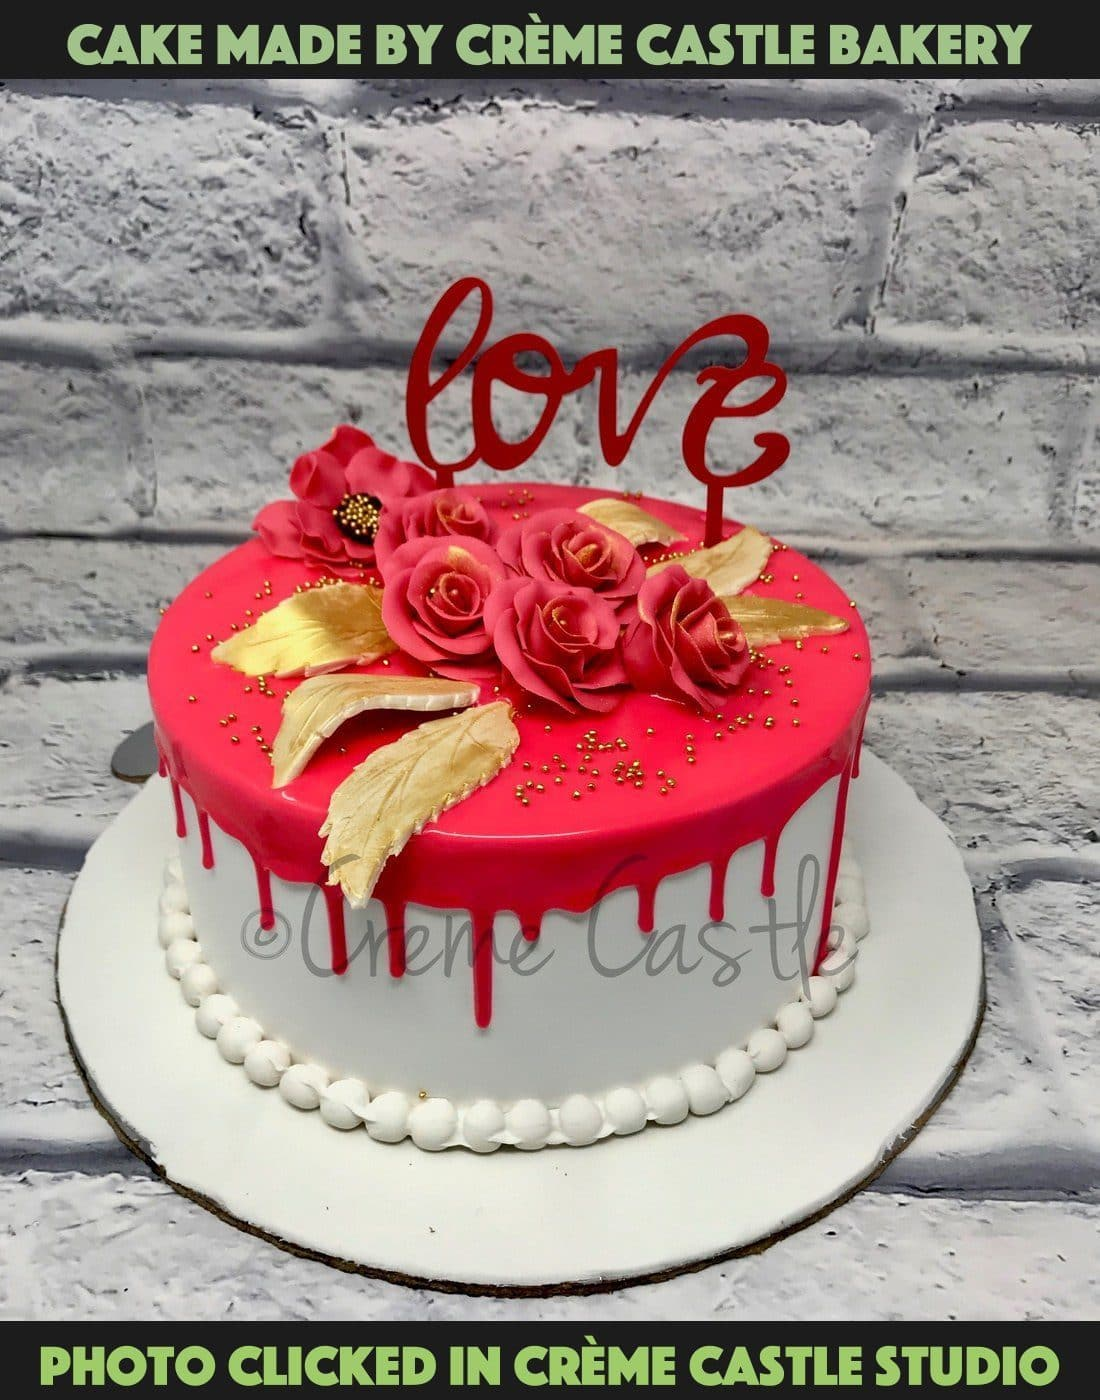 A pink drip cake with roses on top with golden leaves on white base